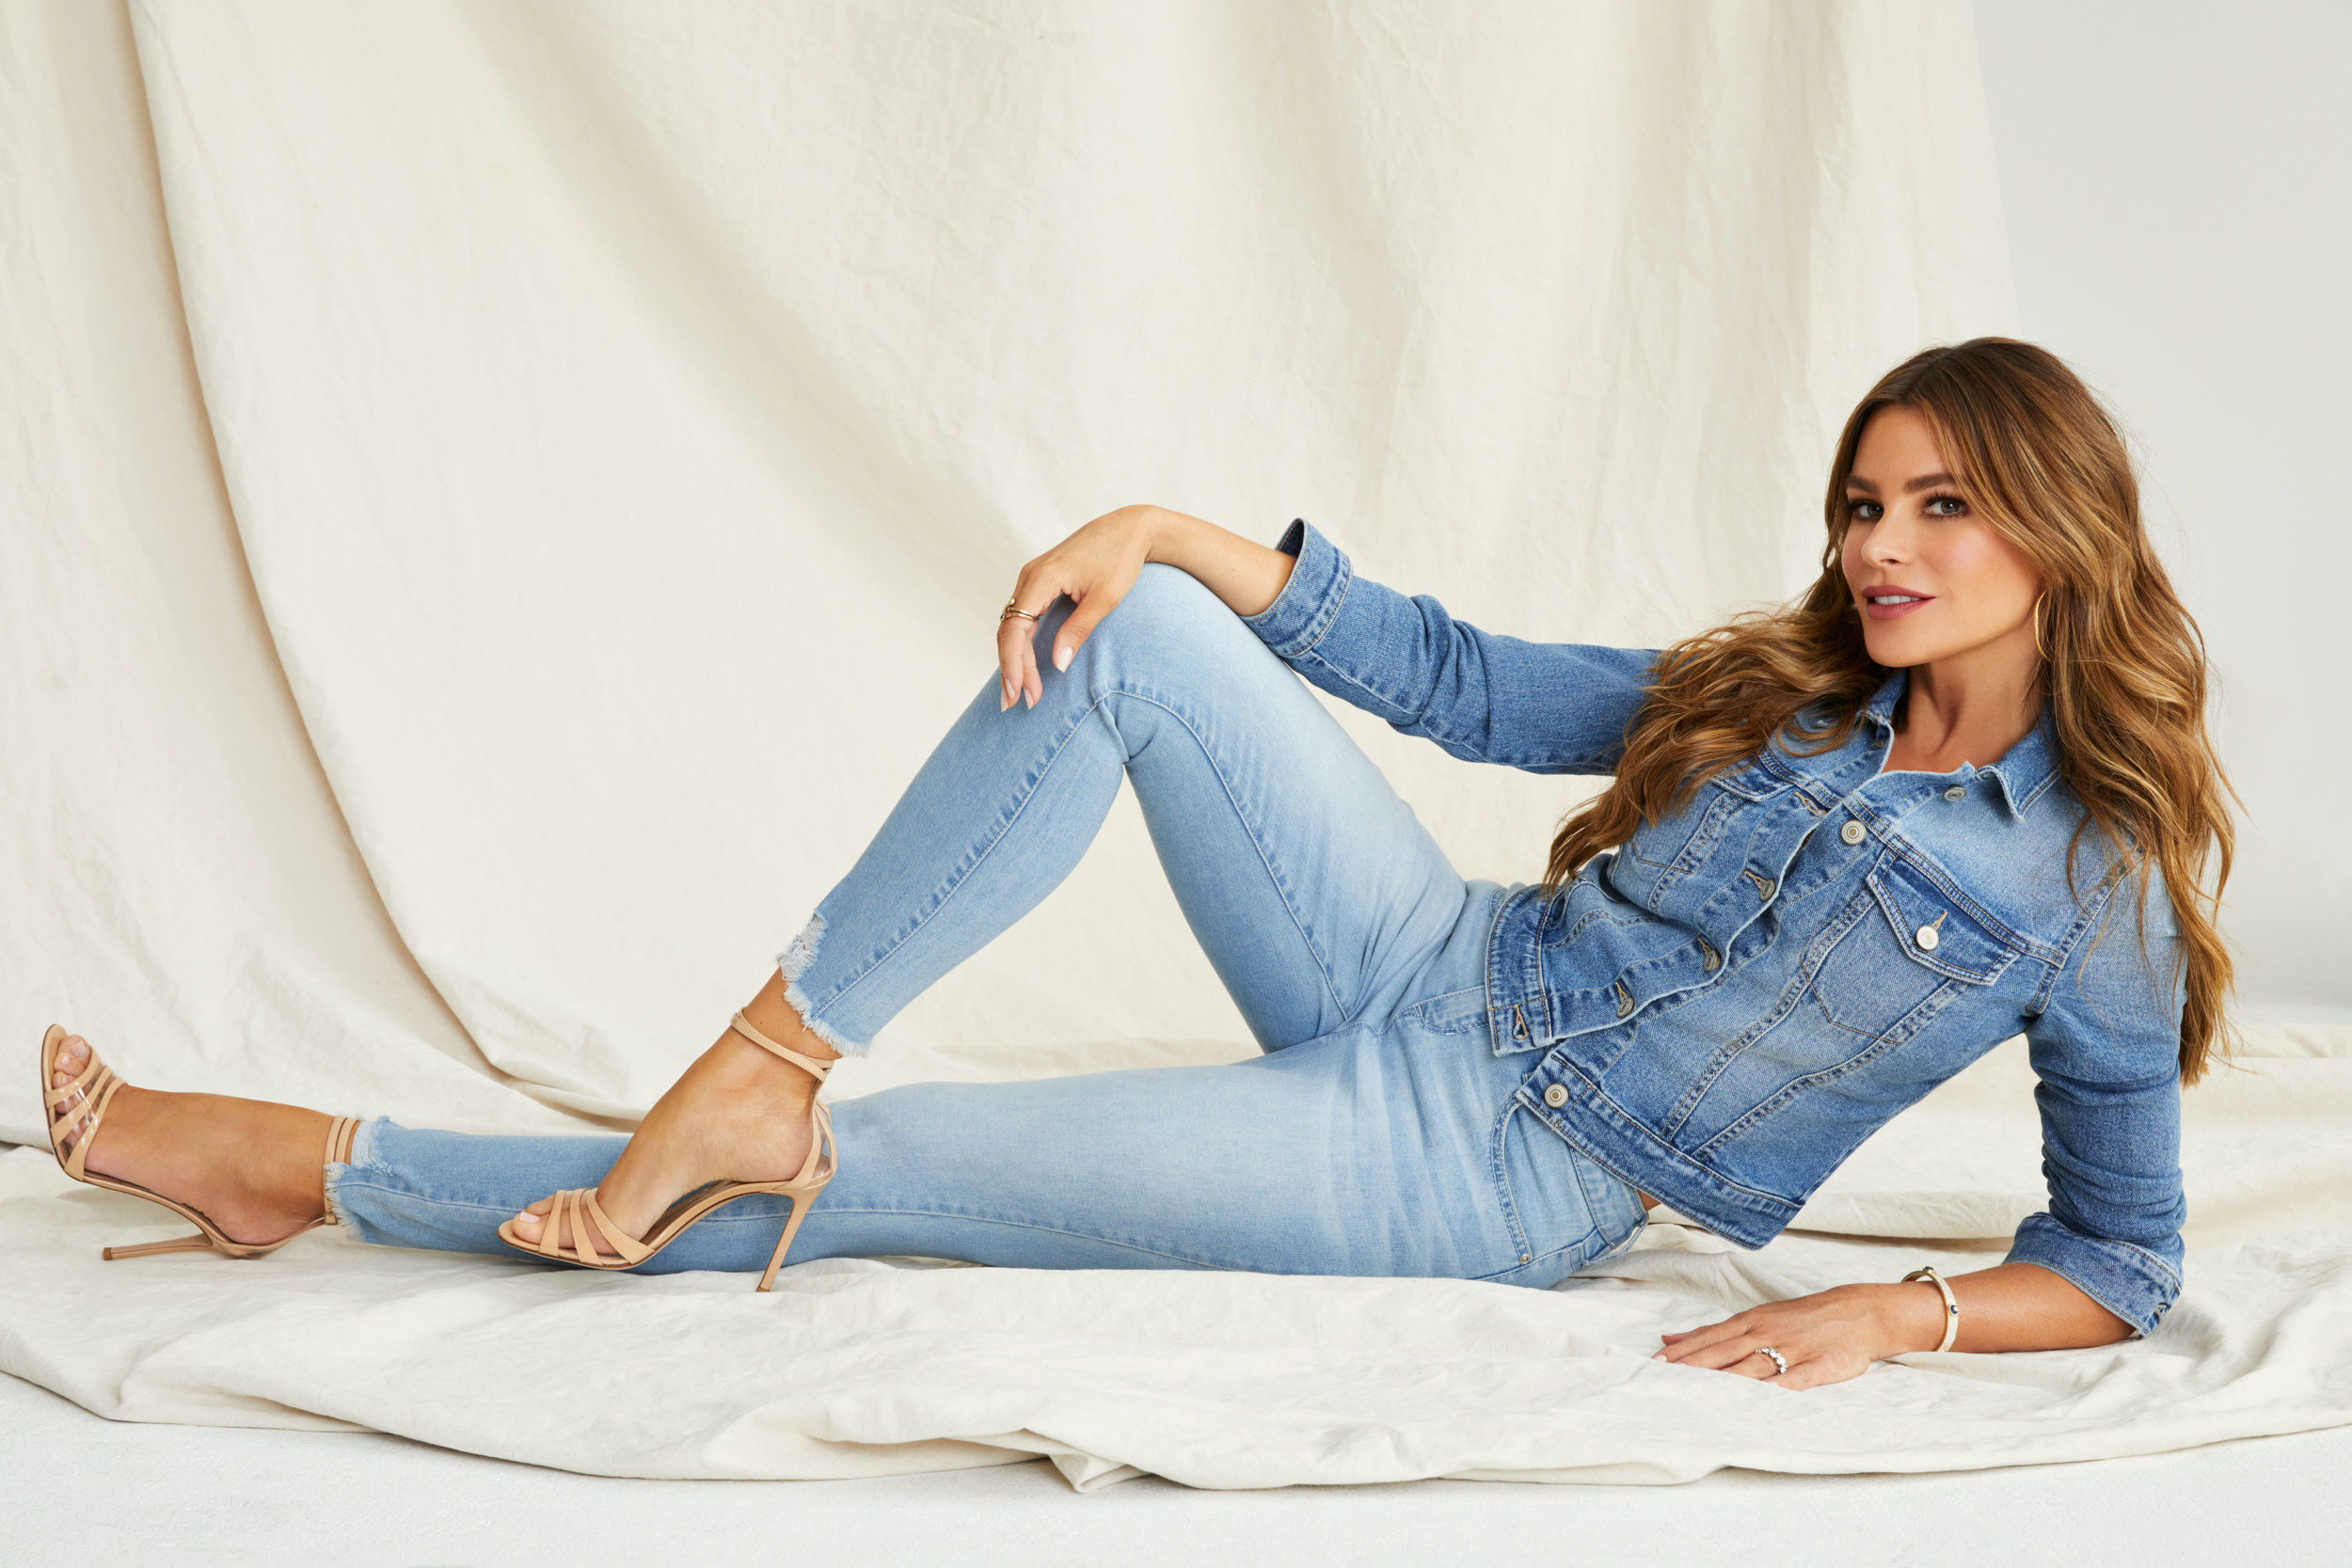 Sofia Jeans - Exclusive collection sold on Walmart.com